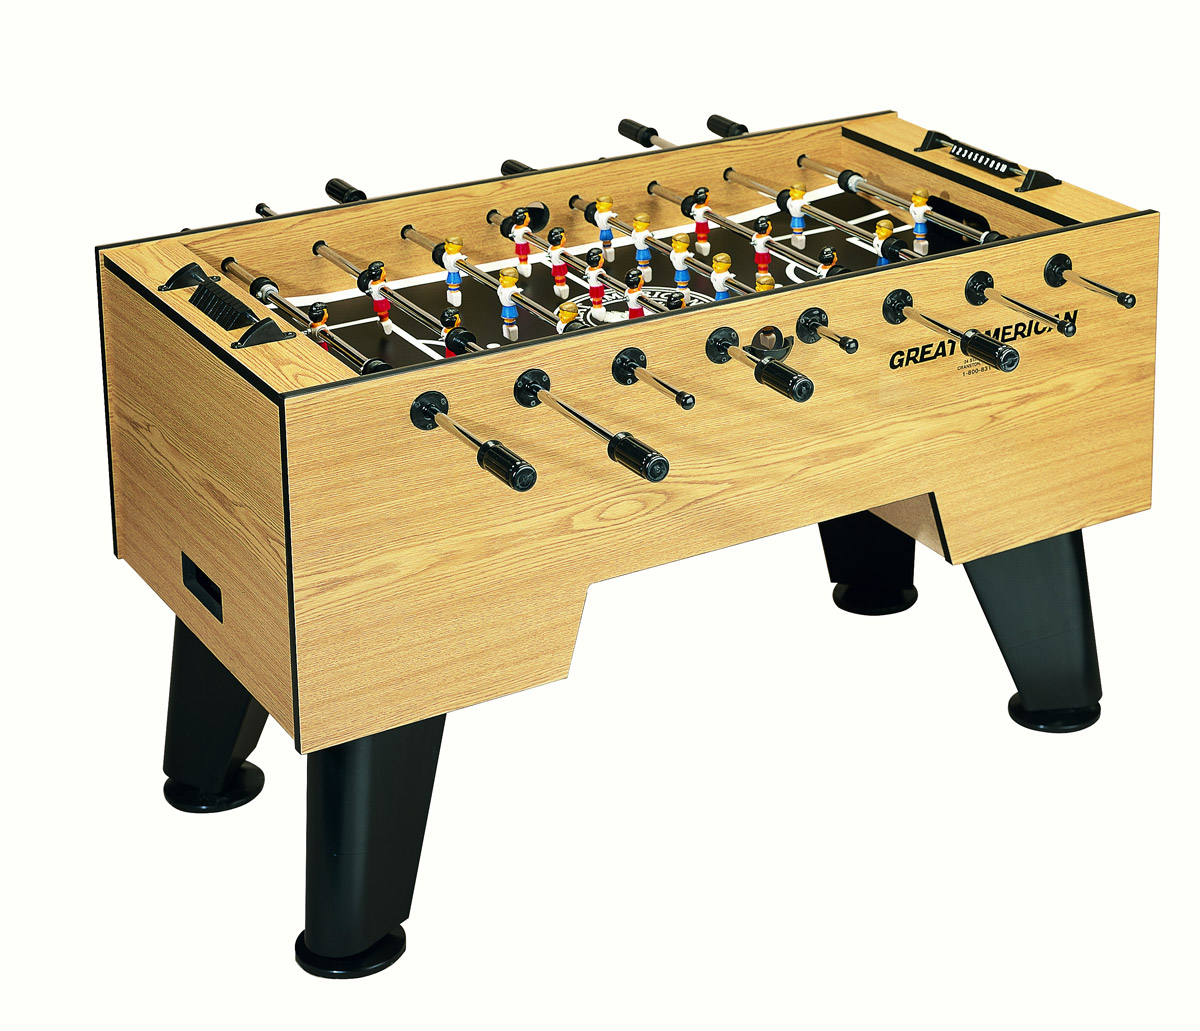 American Foosball Table - GameTablesOnline.com